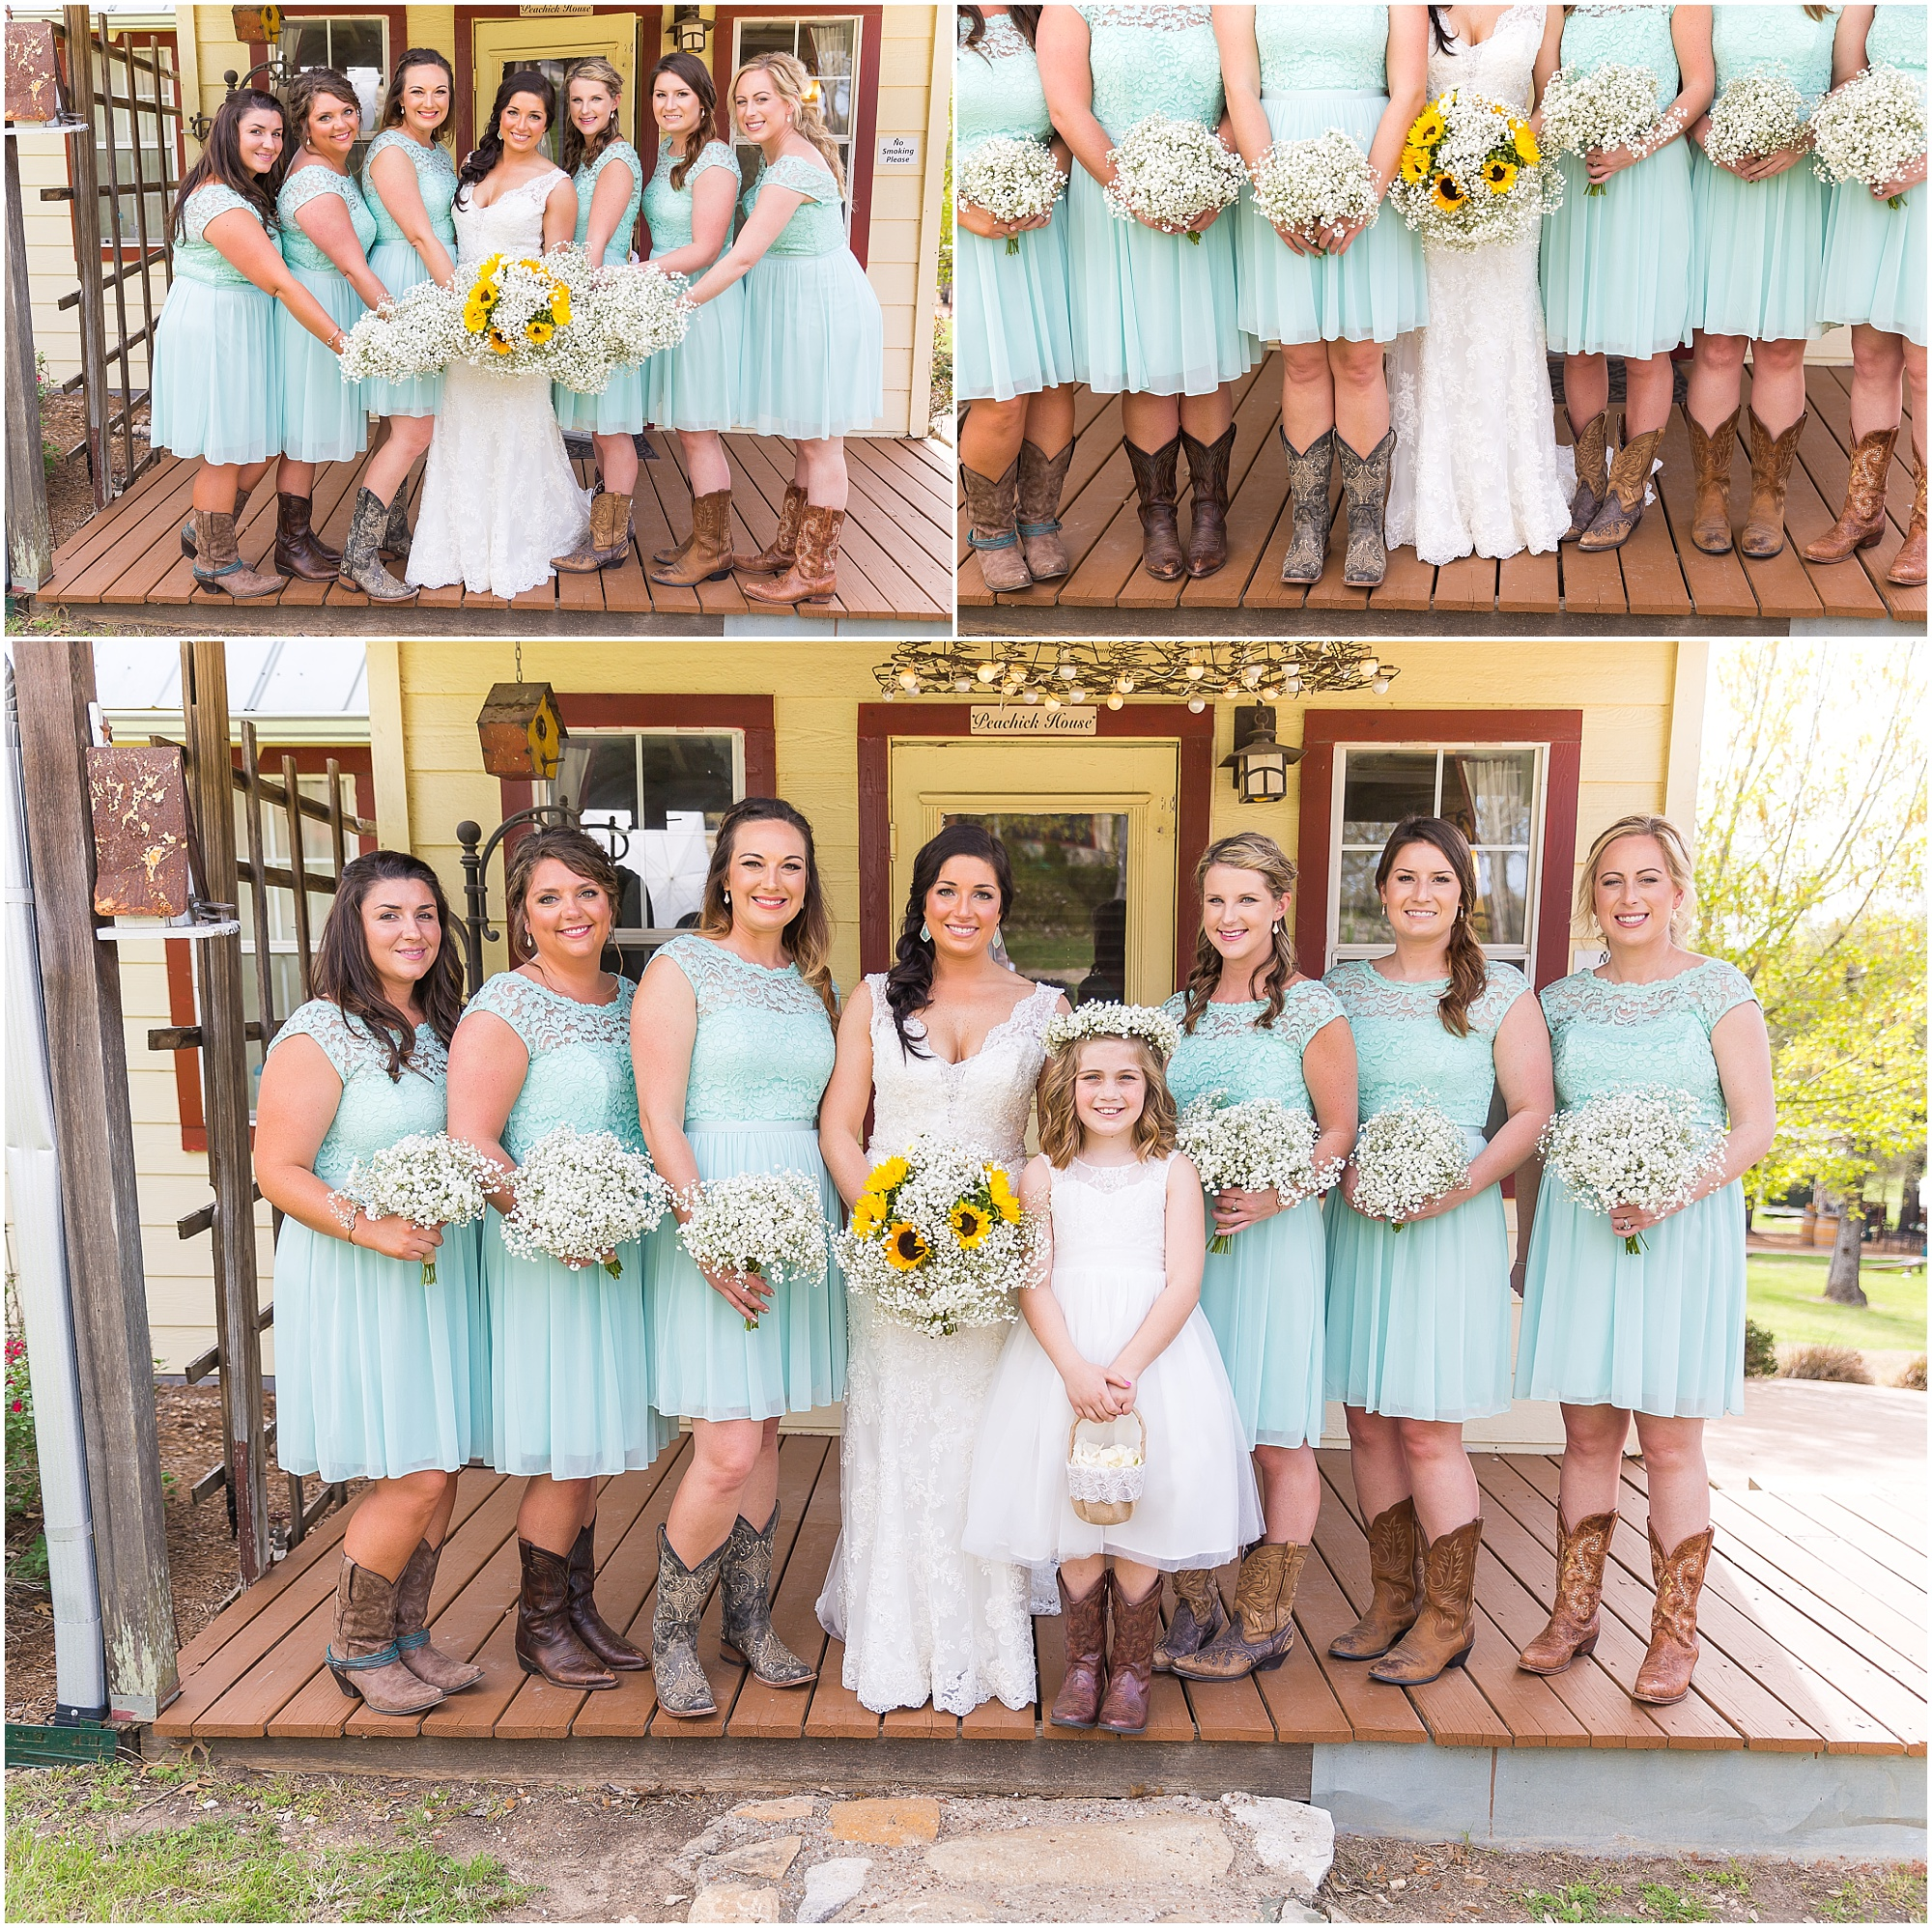 Bridesmaids in turquoise lace dresses and cowboy boots -Rustic wedding at Peacock River Ranch - Jason & Melaina Photography - www.jasonandmelaina.com